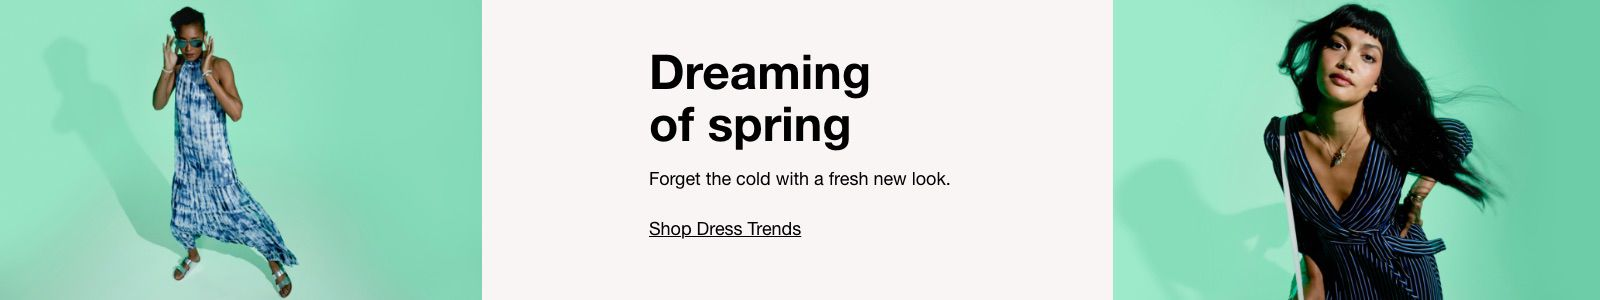 Dreaming of Spring, Forget the cold with a fresh new look, Shop Dress Trends